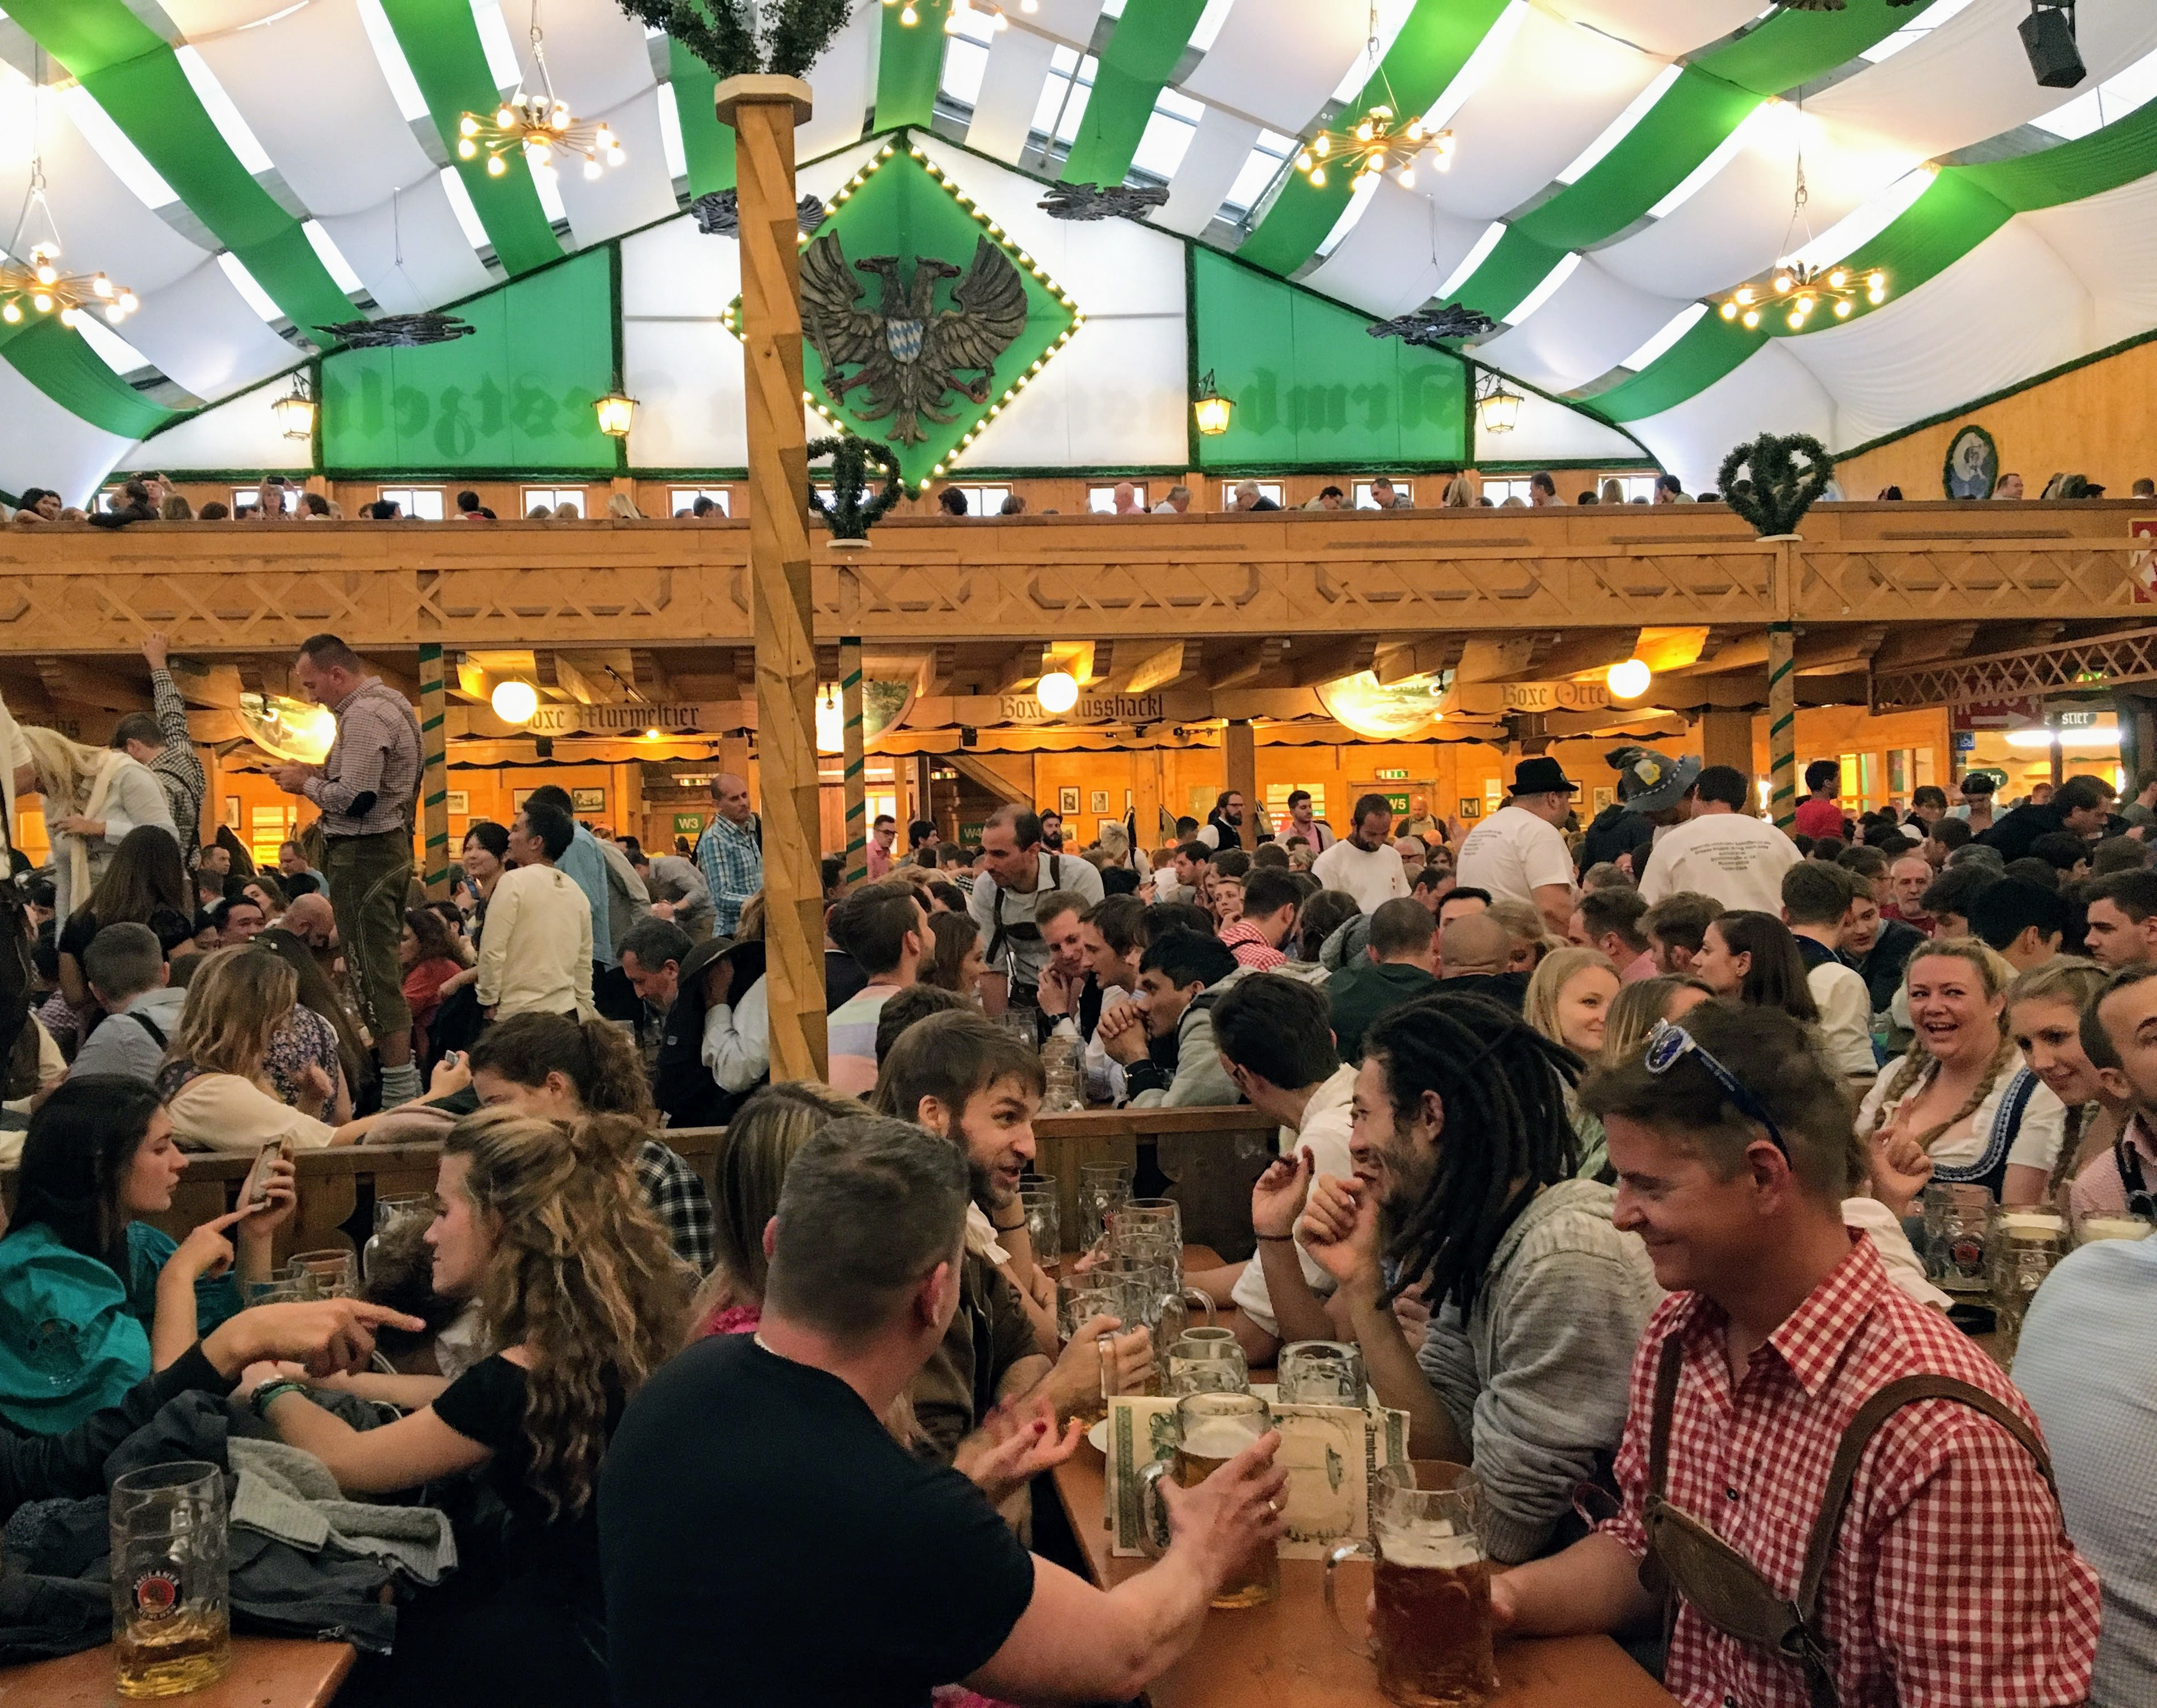 Oktoberfest What To Know Before You Go - 10 best tents to visit at oktoberfest in munich